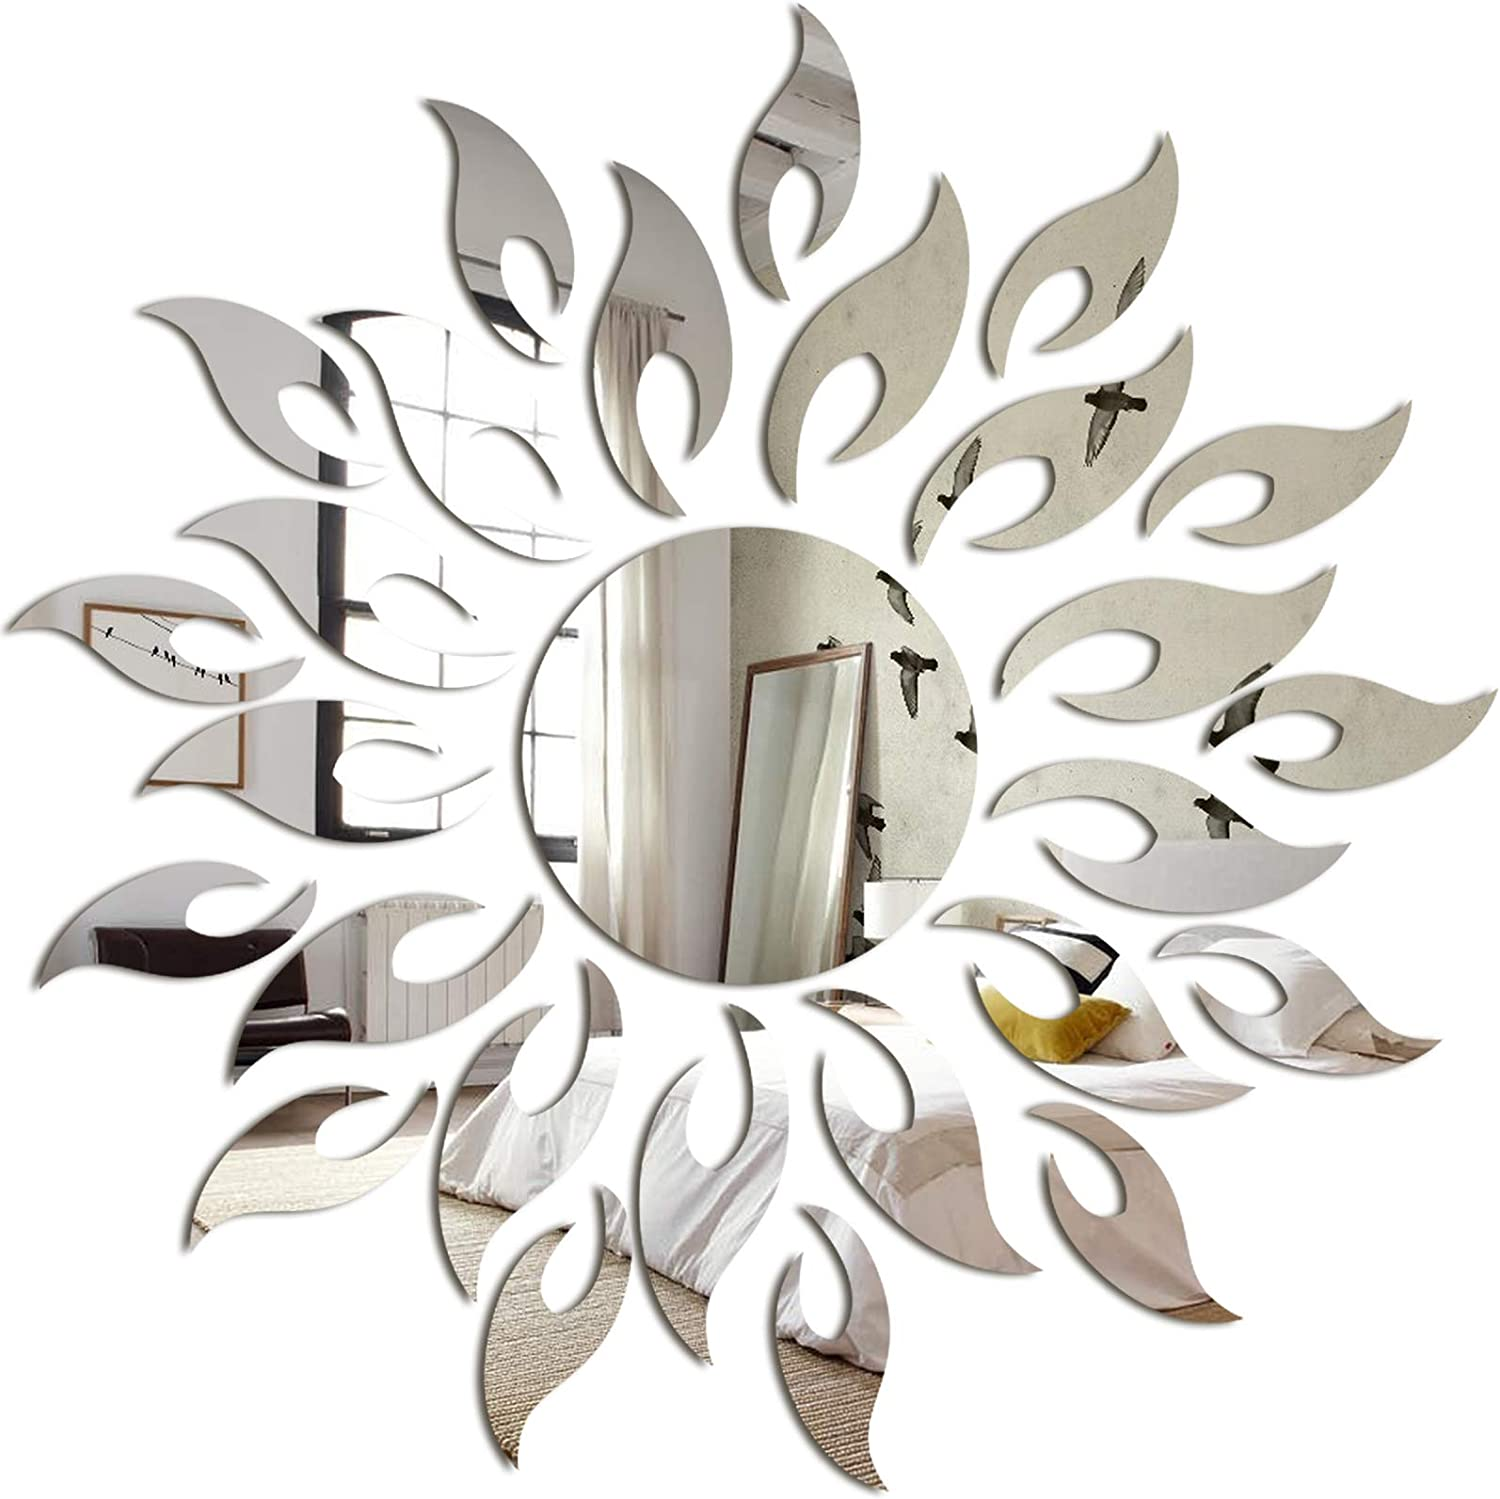 Mirror Sun Flower Shape Decal Art Wall Sticker Self-adhesive Acrylic Home Bedroom Decor gold panthem 27pcs Wall Tile Stickers